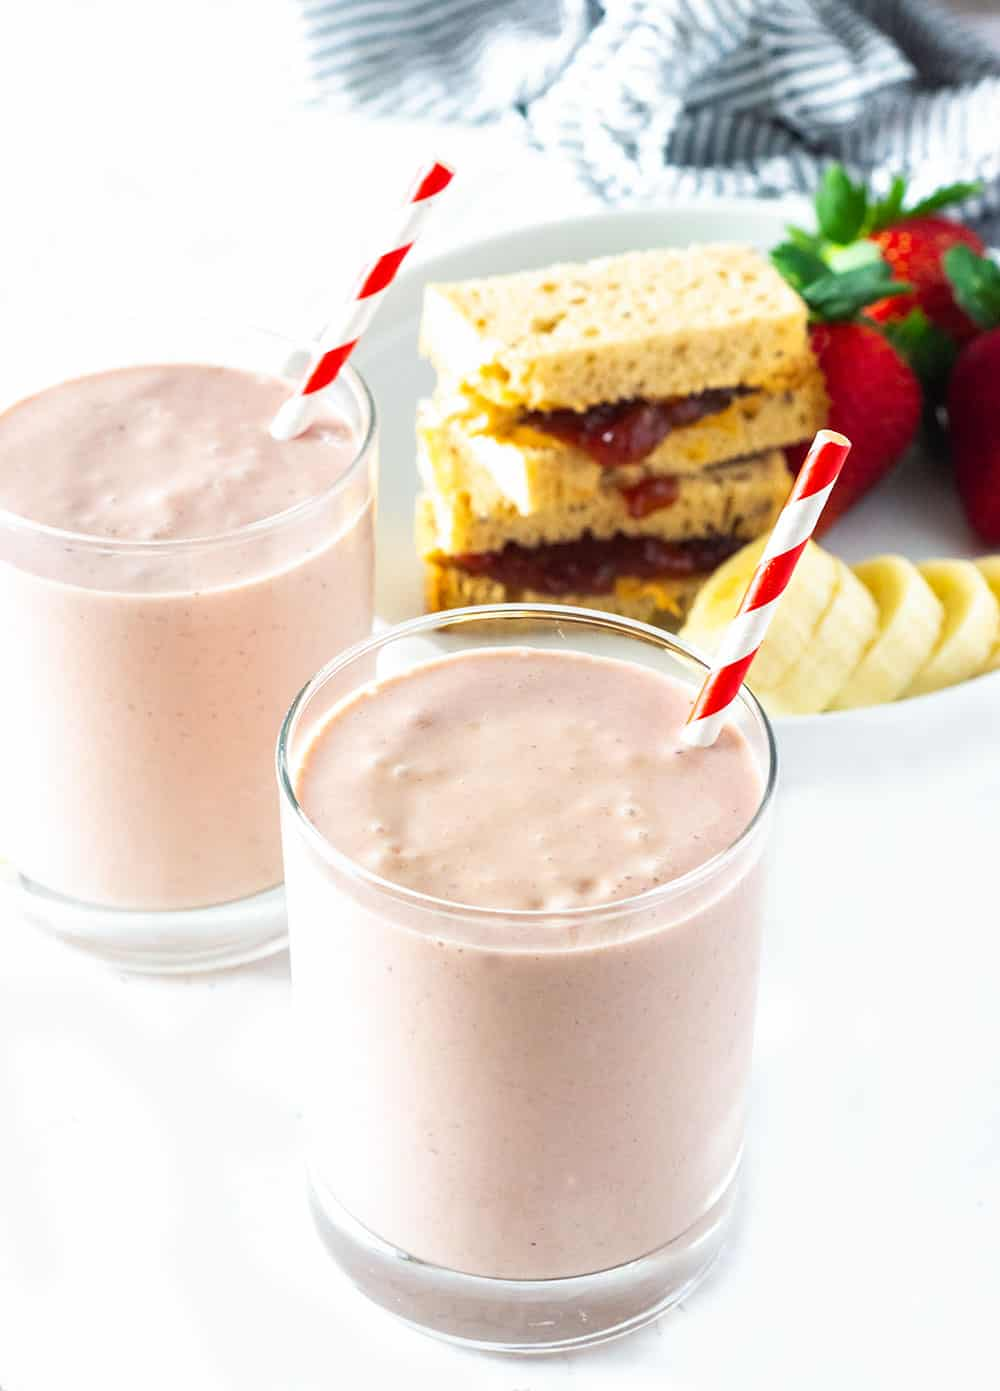 two glasses of pbj smoothie with red and white straws, and pbj sandwiches, strawberries, and banana in the background